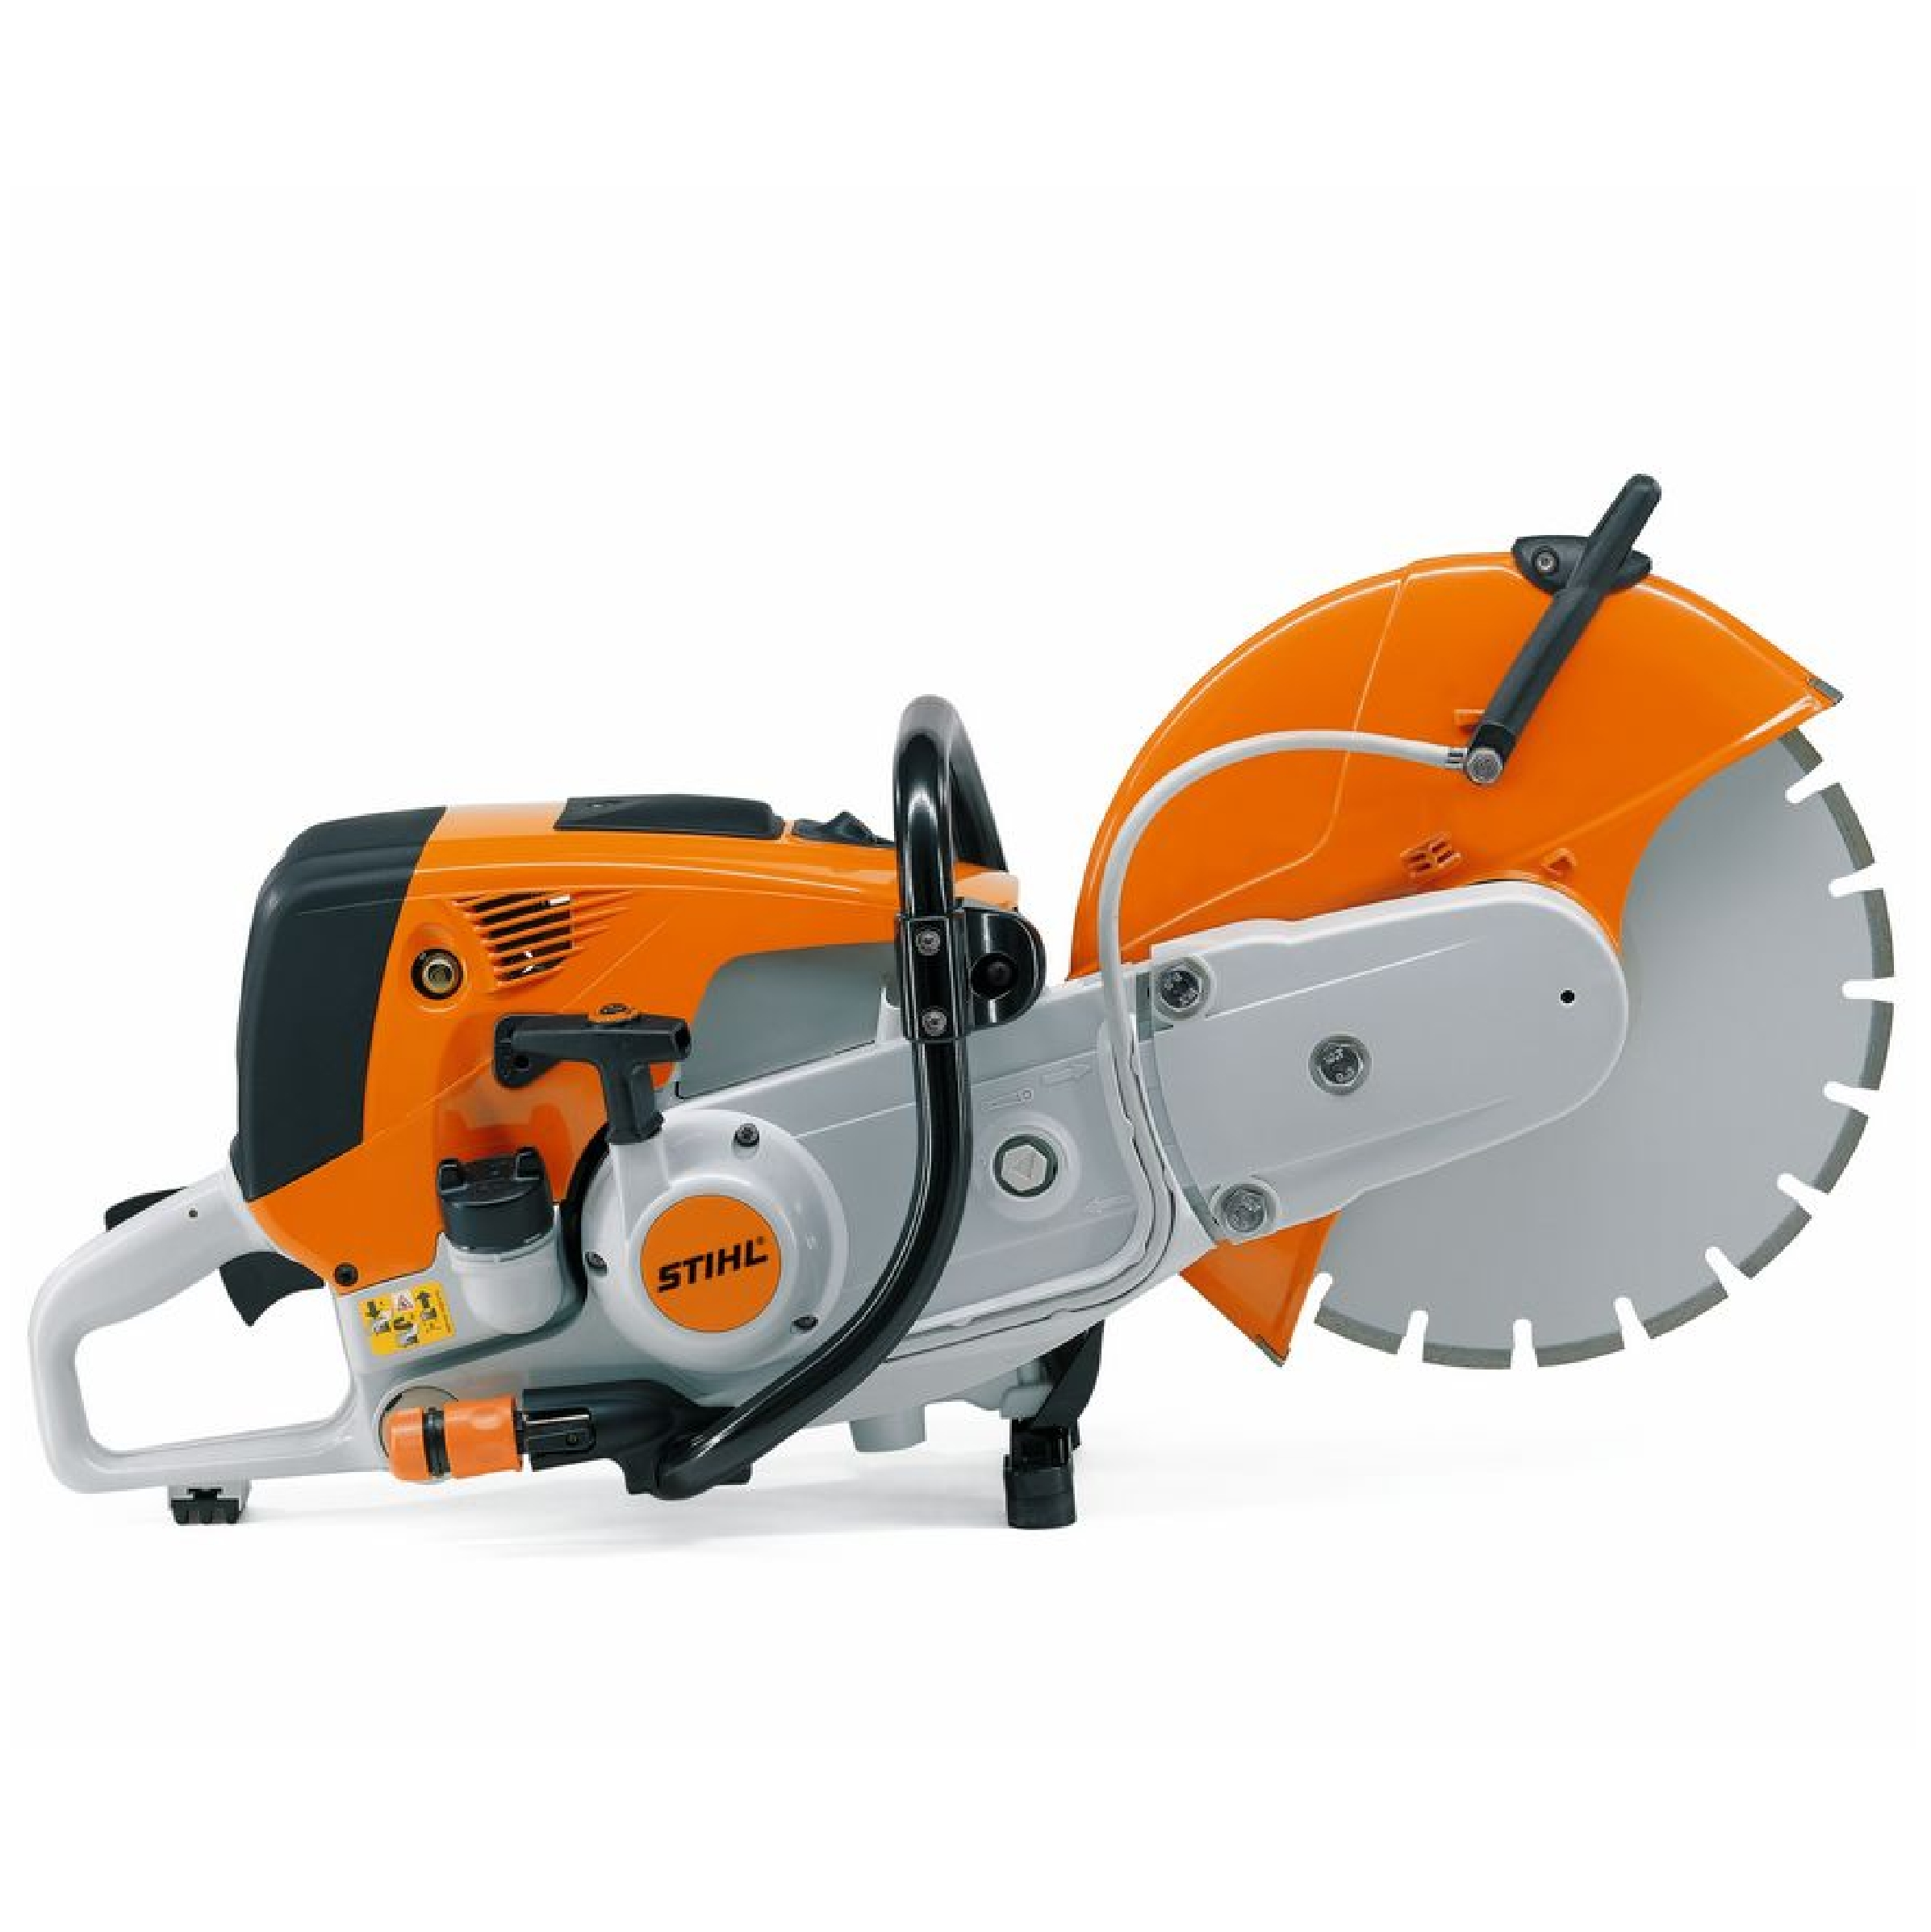 TS700 Cutoff Saw